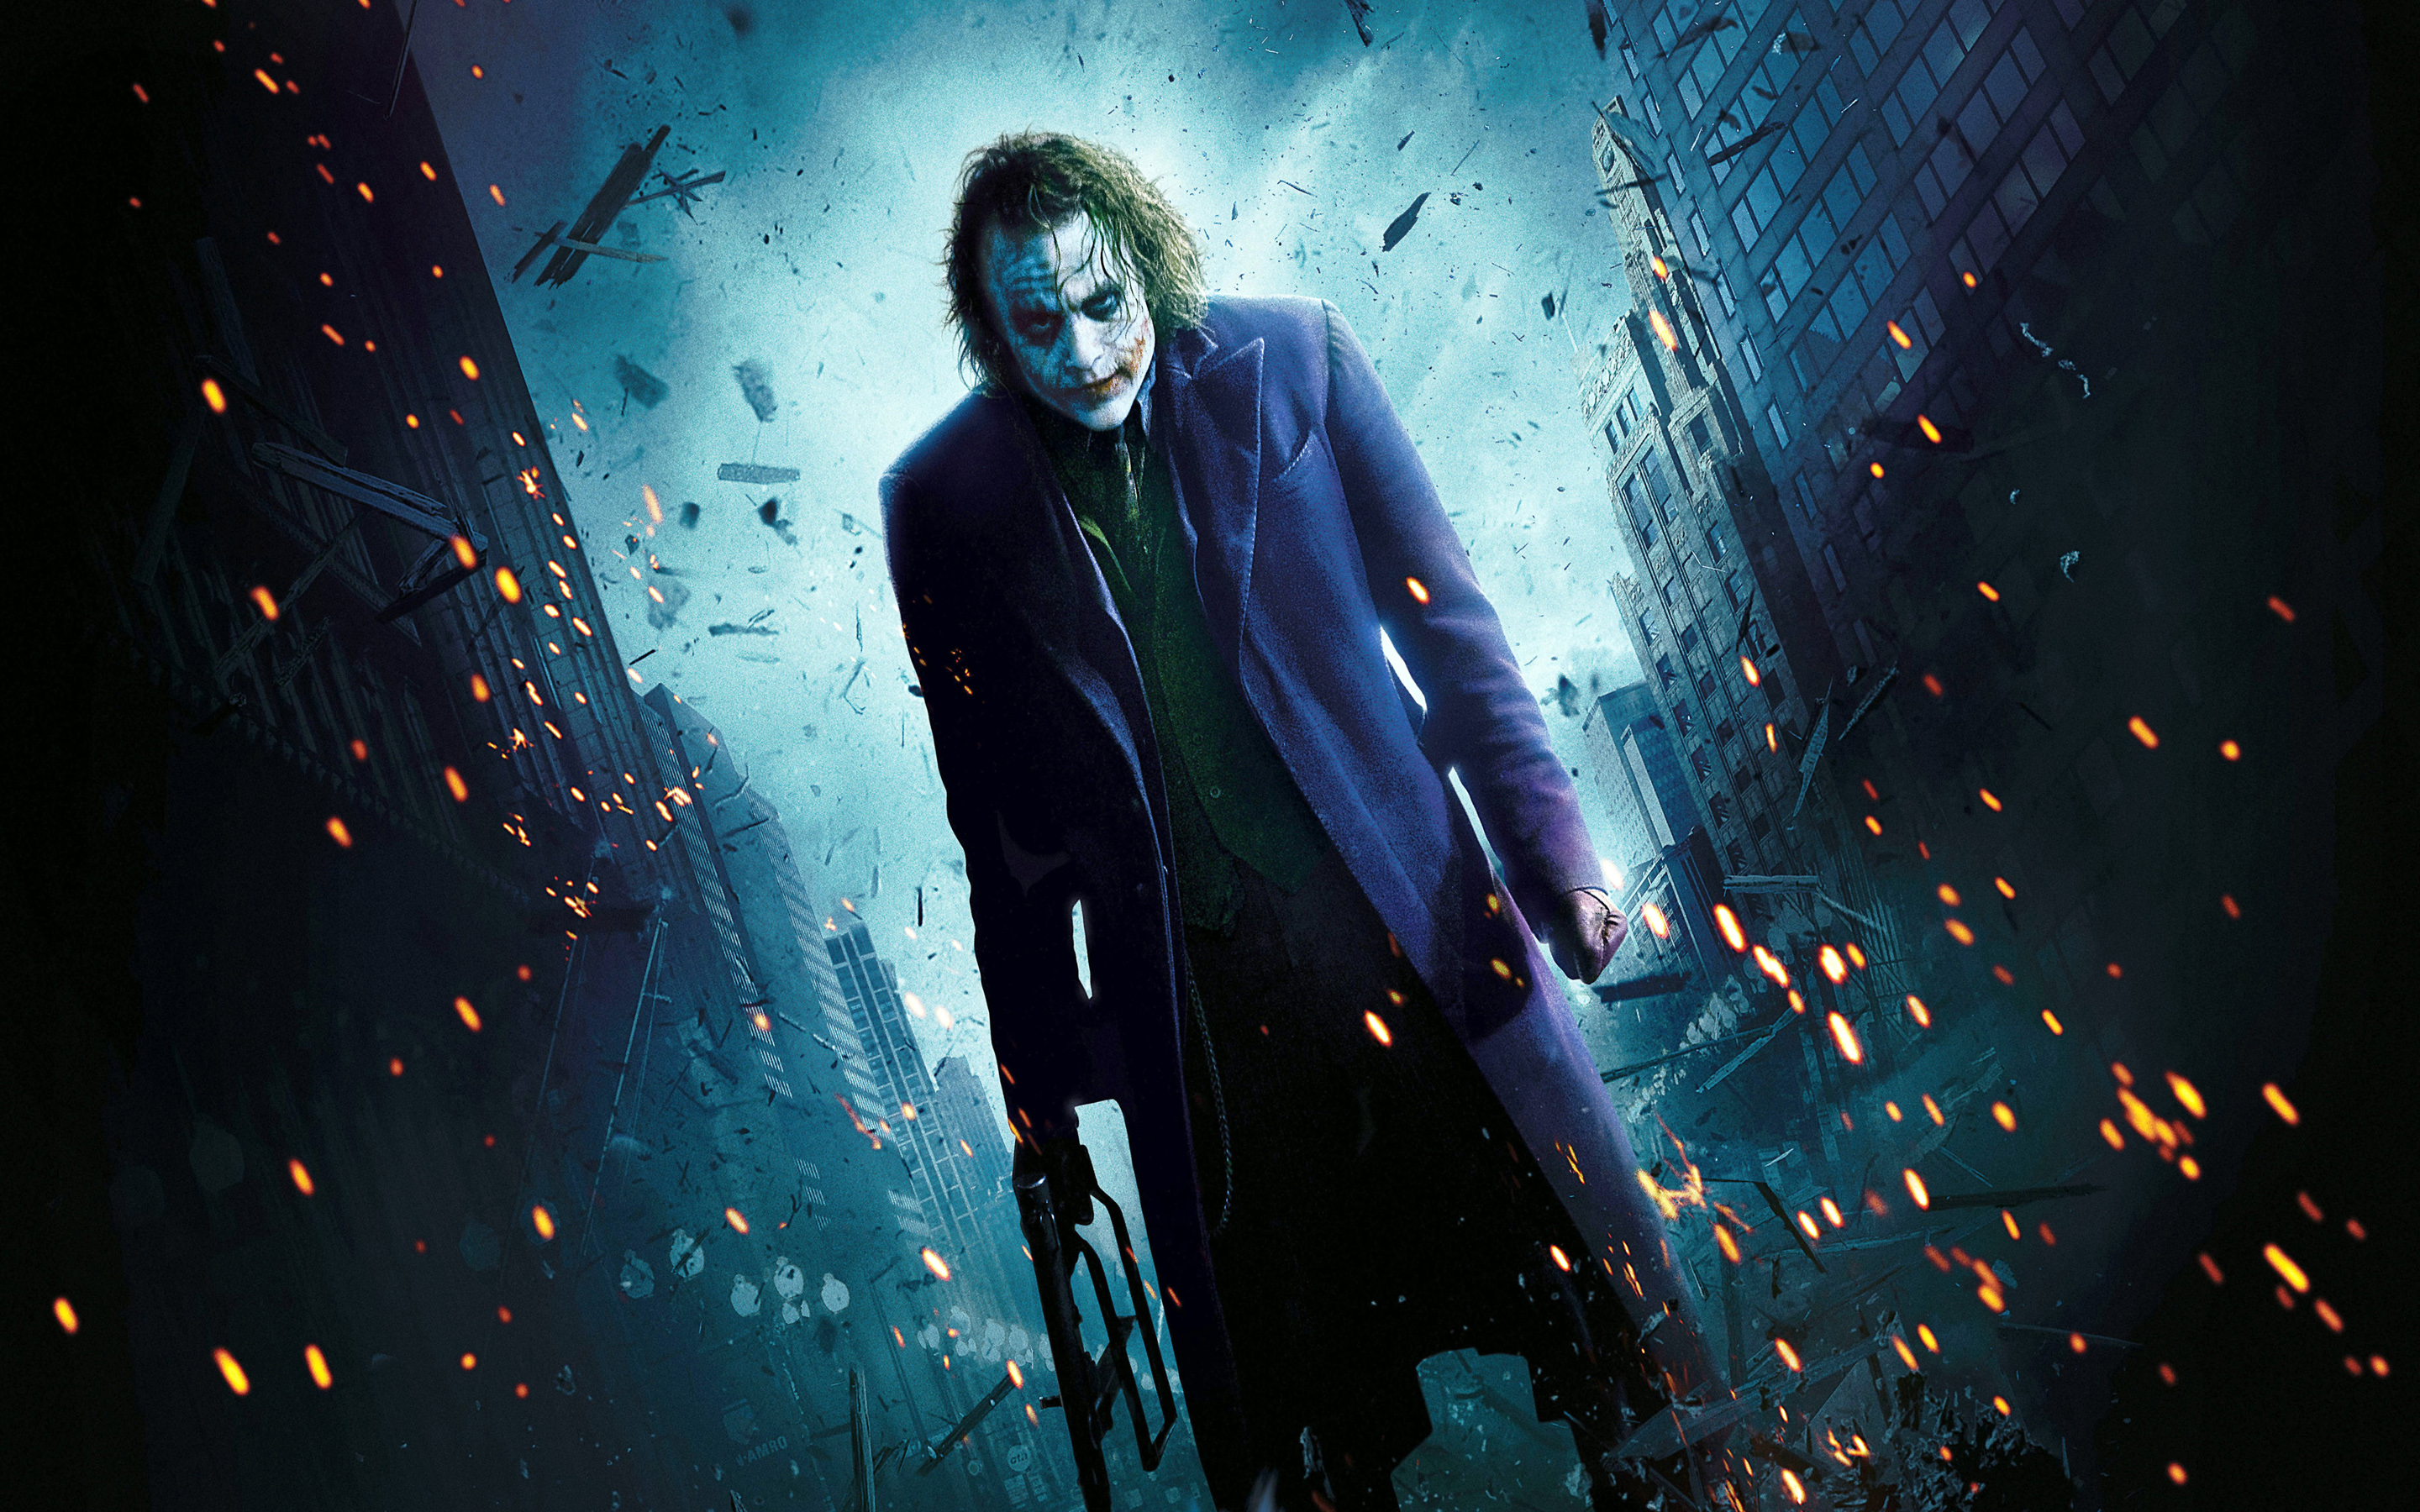 Joker Wallpapers HD Wallpapers 2880x1800